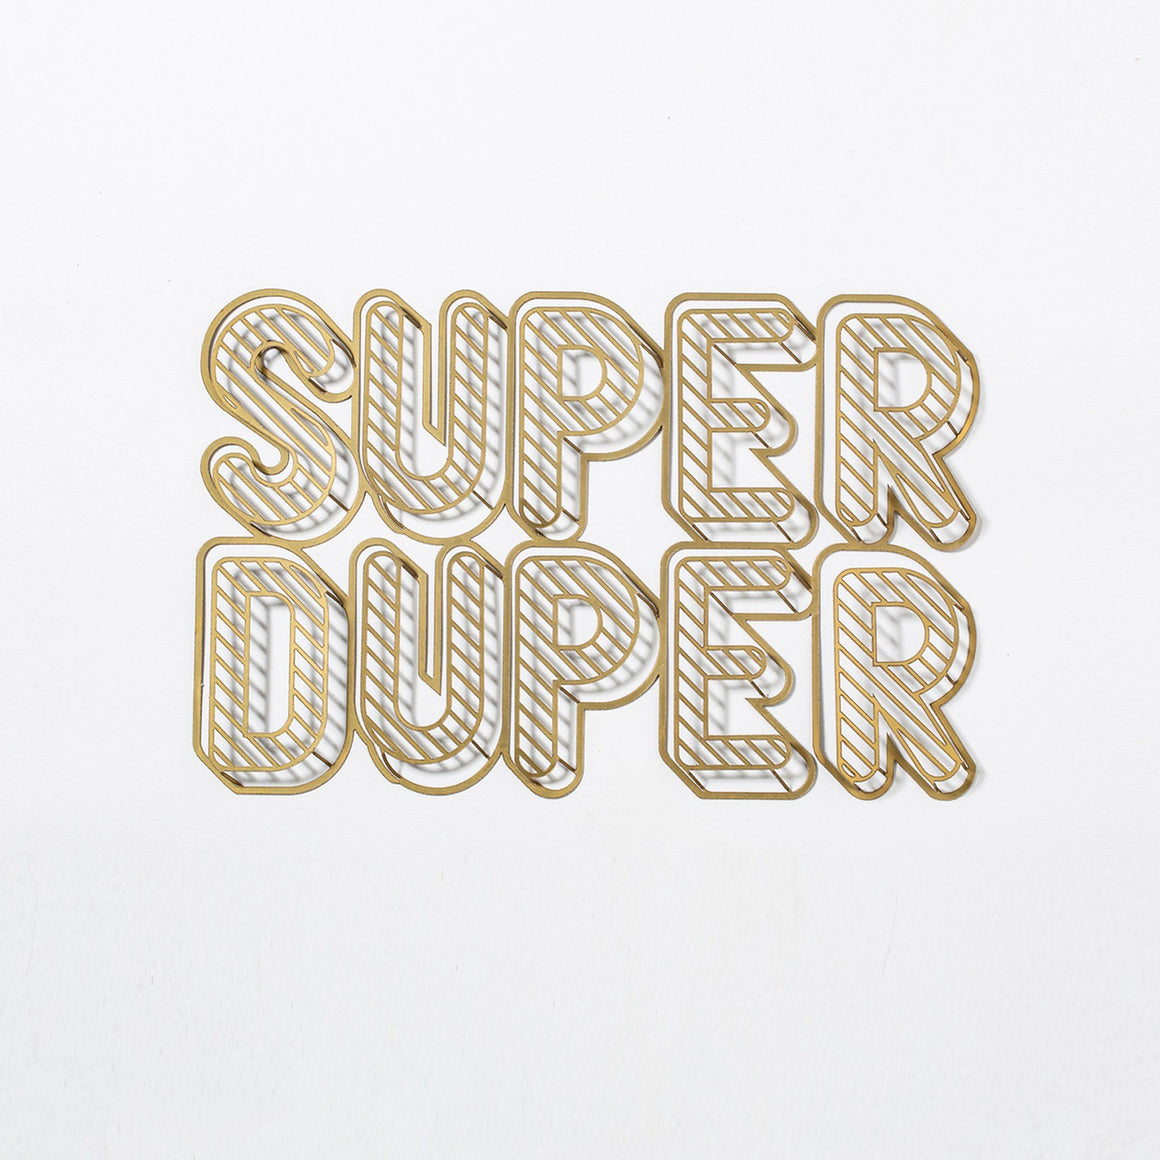 SUPER DUPER Inspirational Phrase to hang on the wall | Wall Decor ShapeMixer